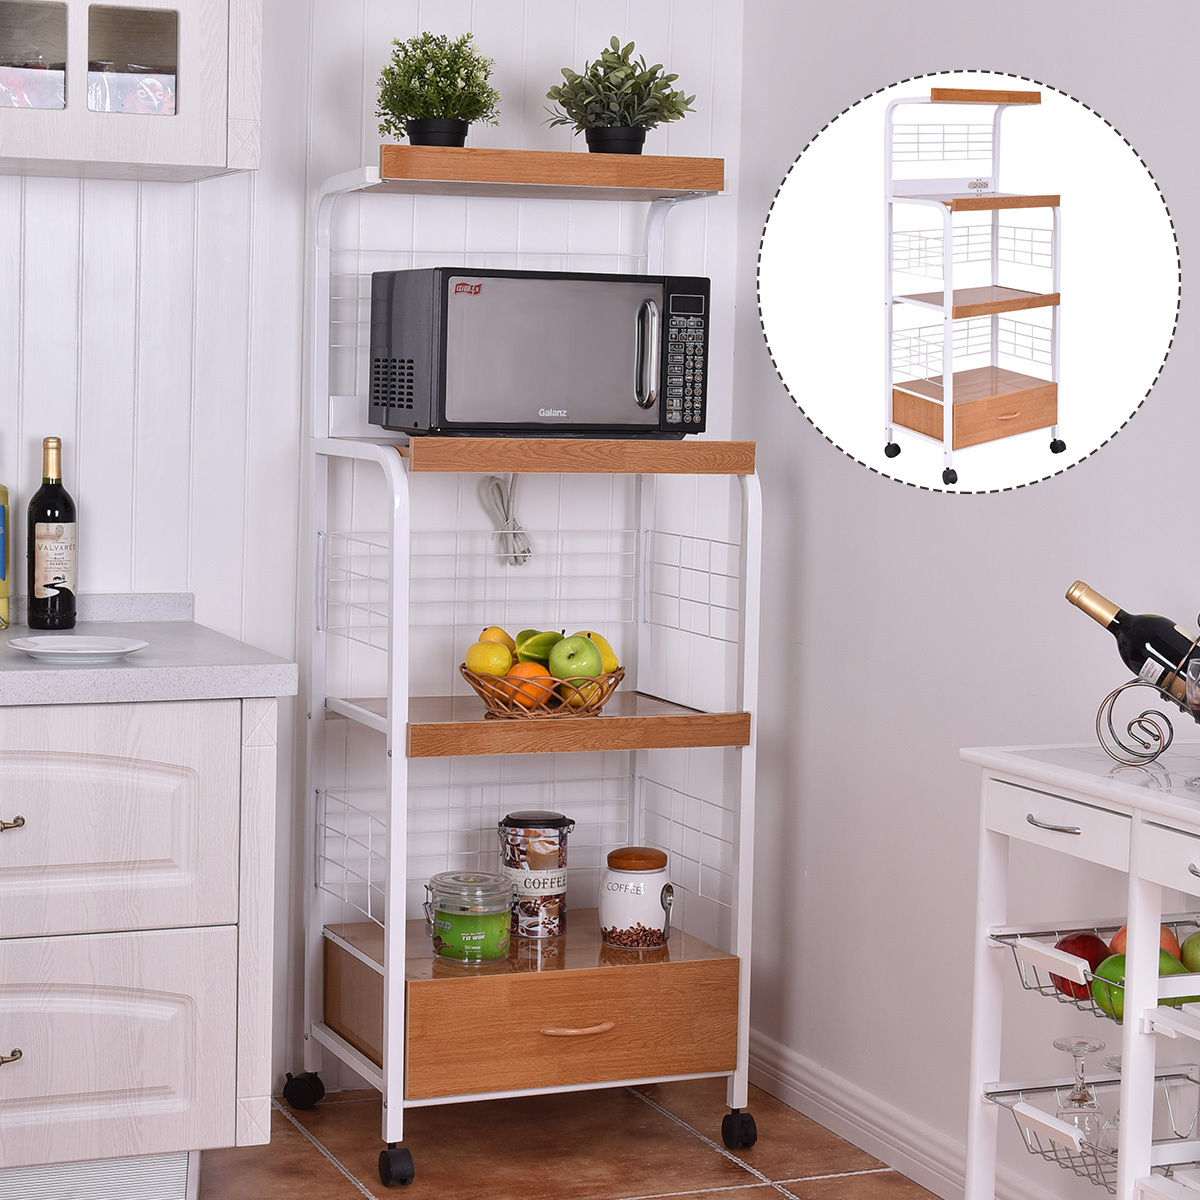 Costway 62u0027u0027 Bakers Rack Microwave Stand Rolling Kitchen Storage Cart  W/Electric Outlet